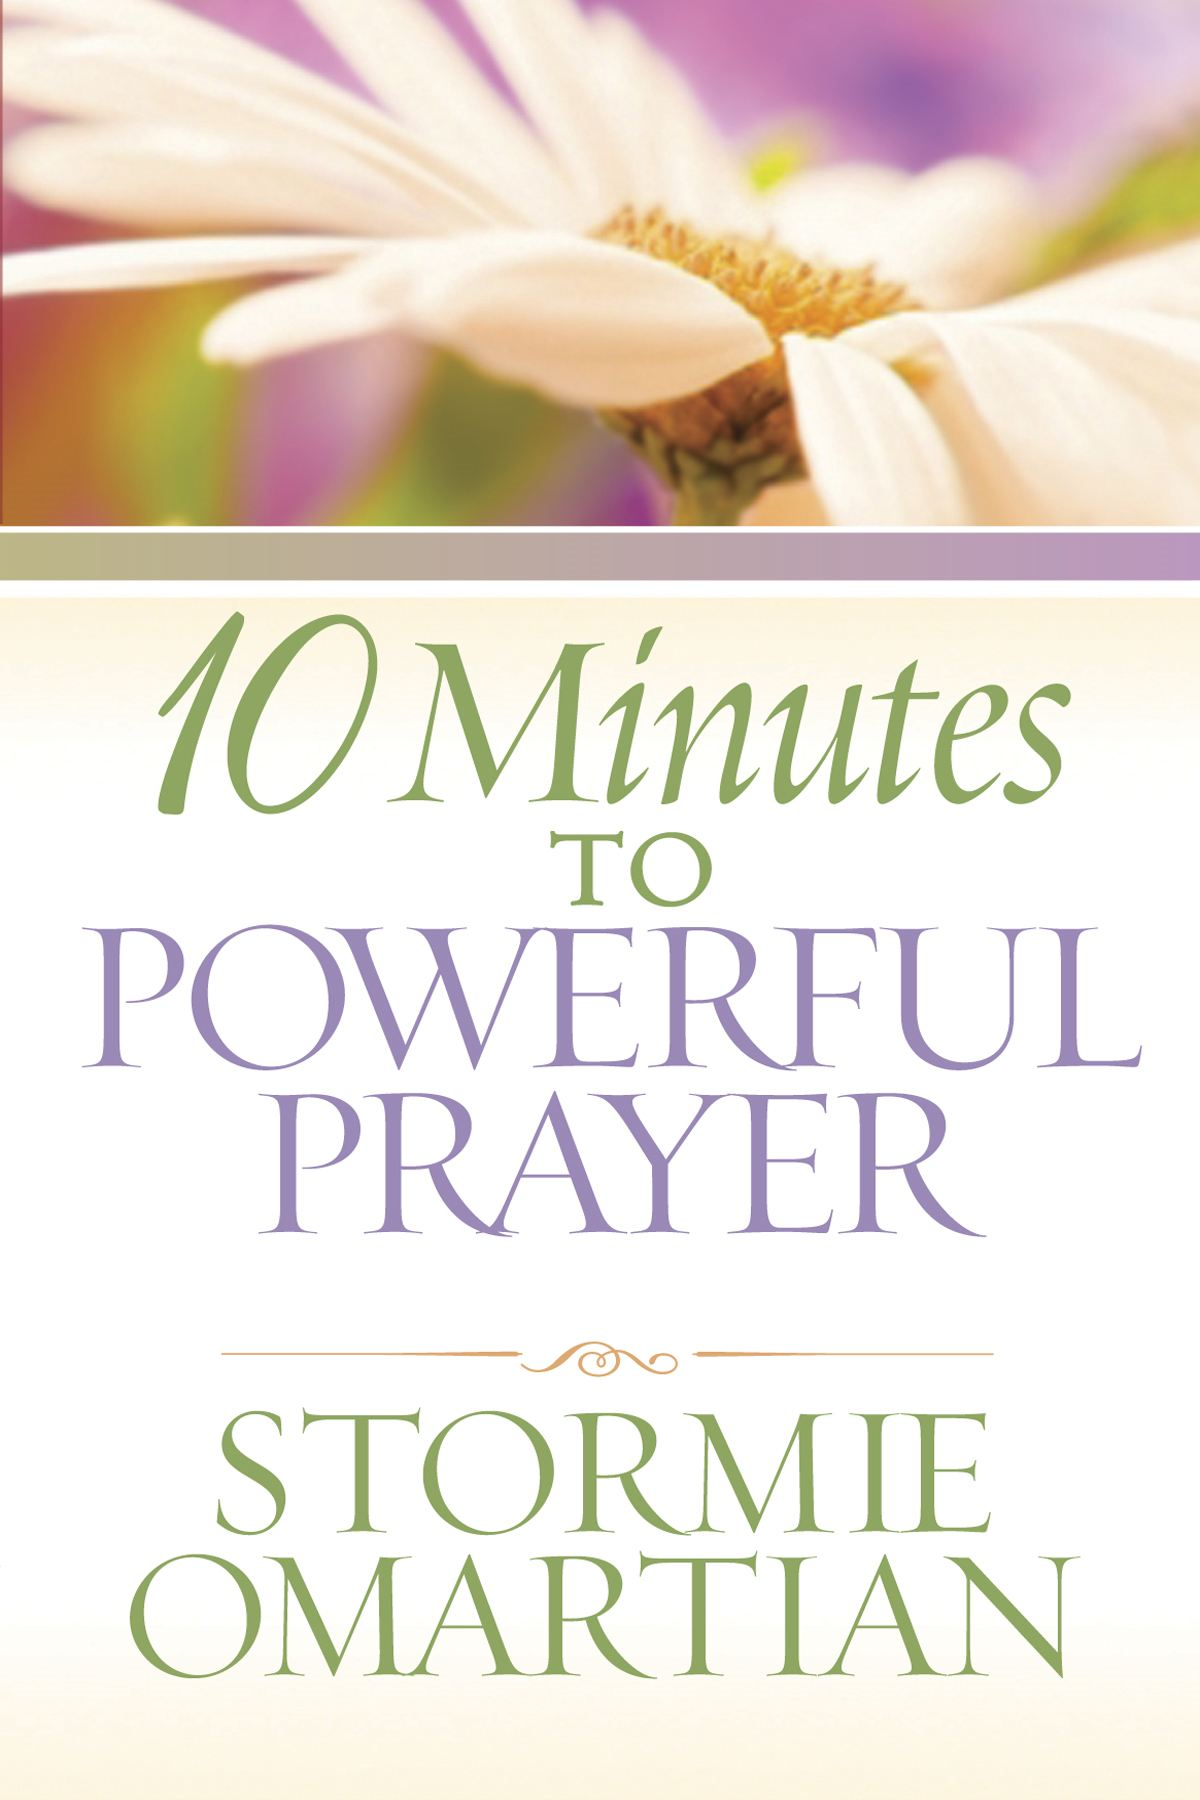 10 Minutes to Powerful Prayer By: Stormie Omartian